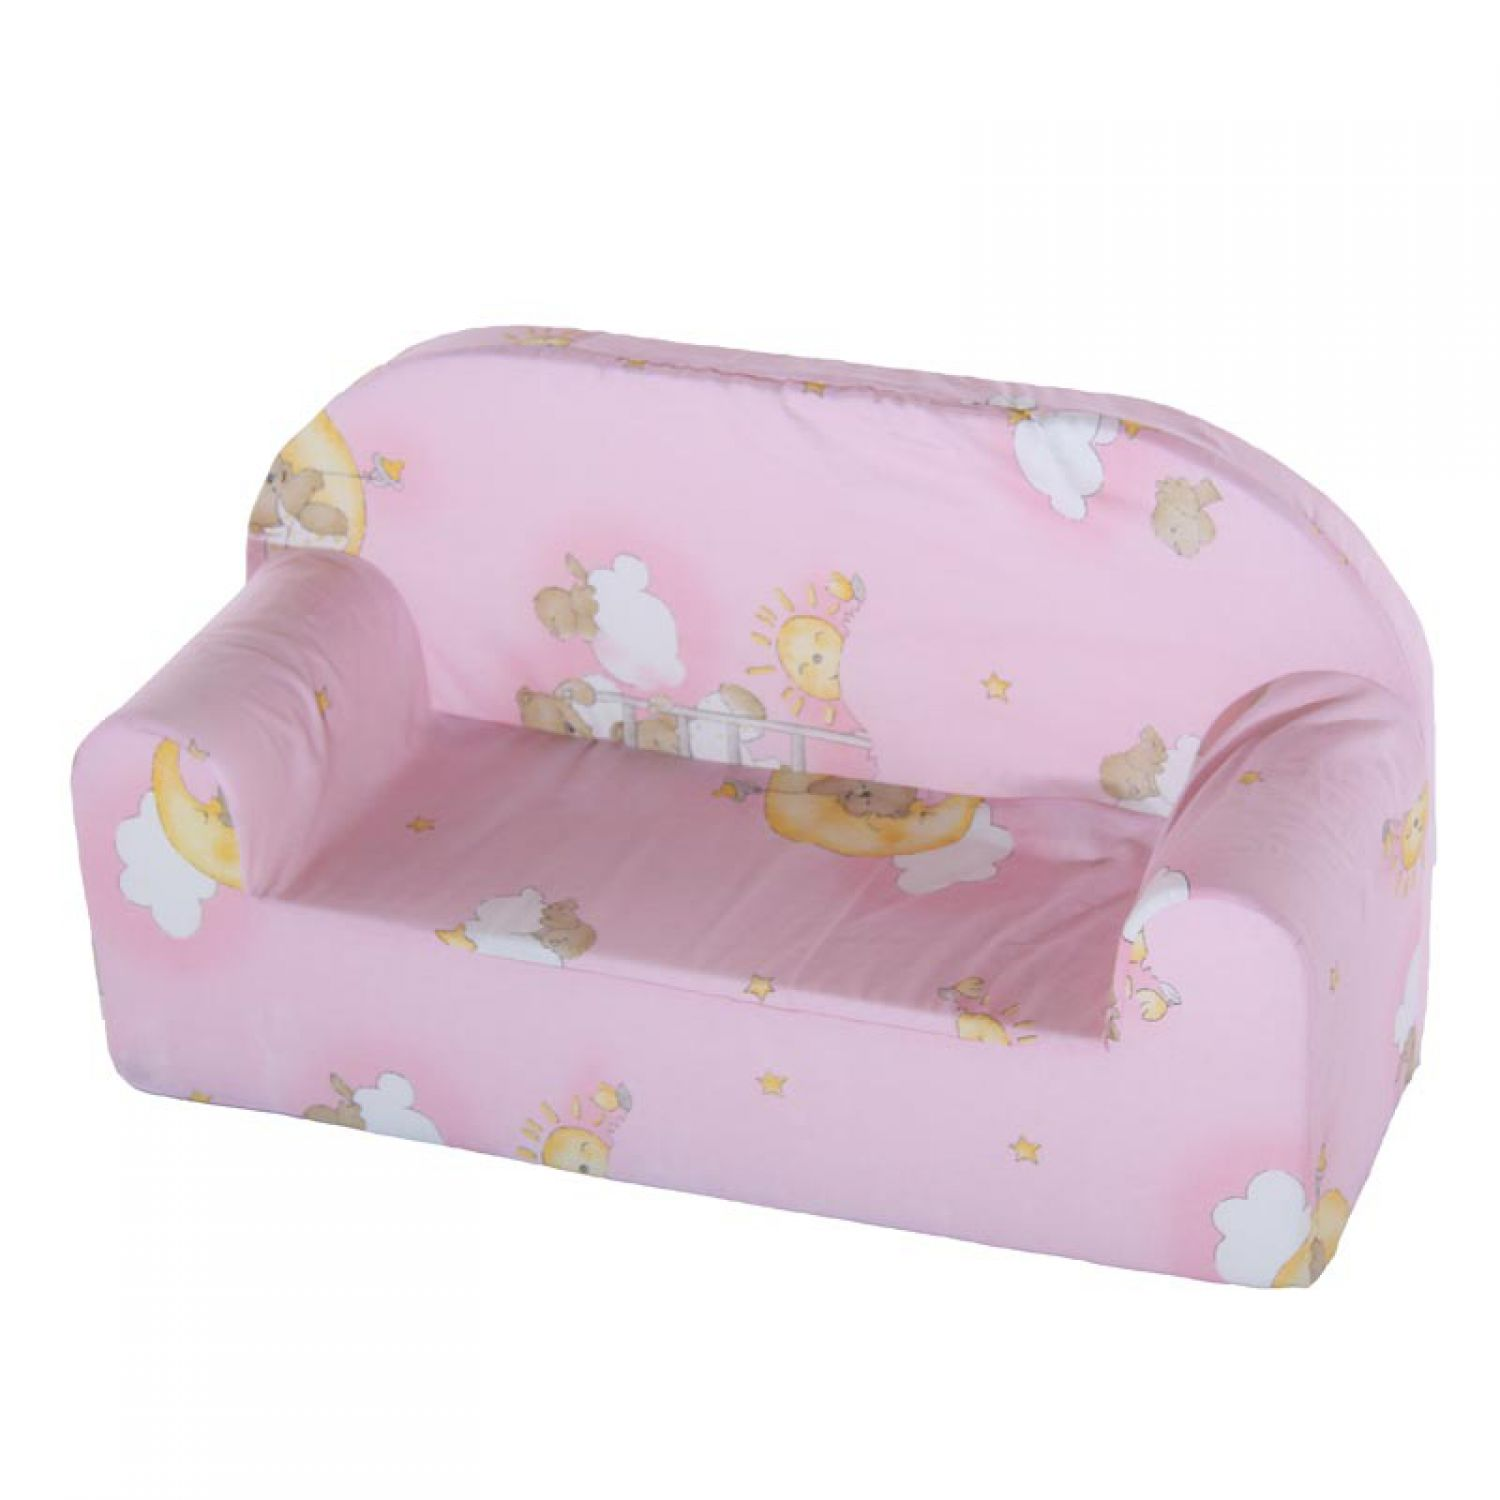 soft chairs for toddlers ashley dining room kid 39s sofa 75x29x43cm children furniture